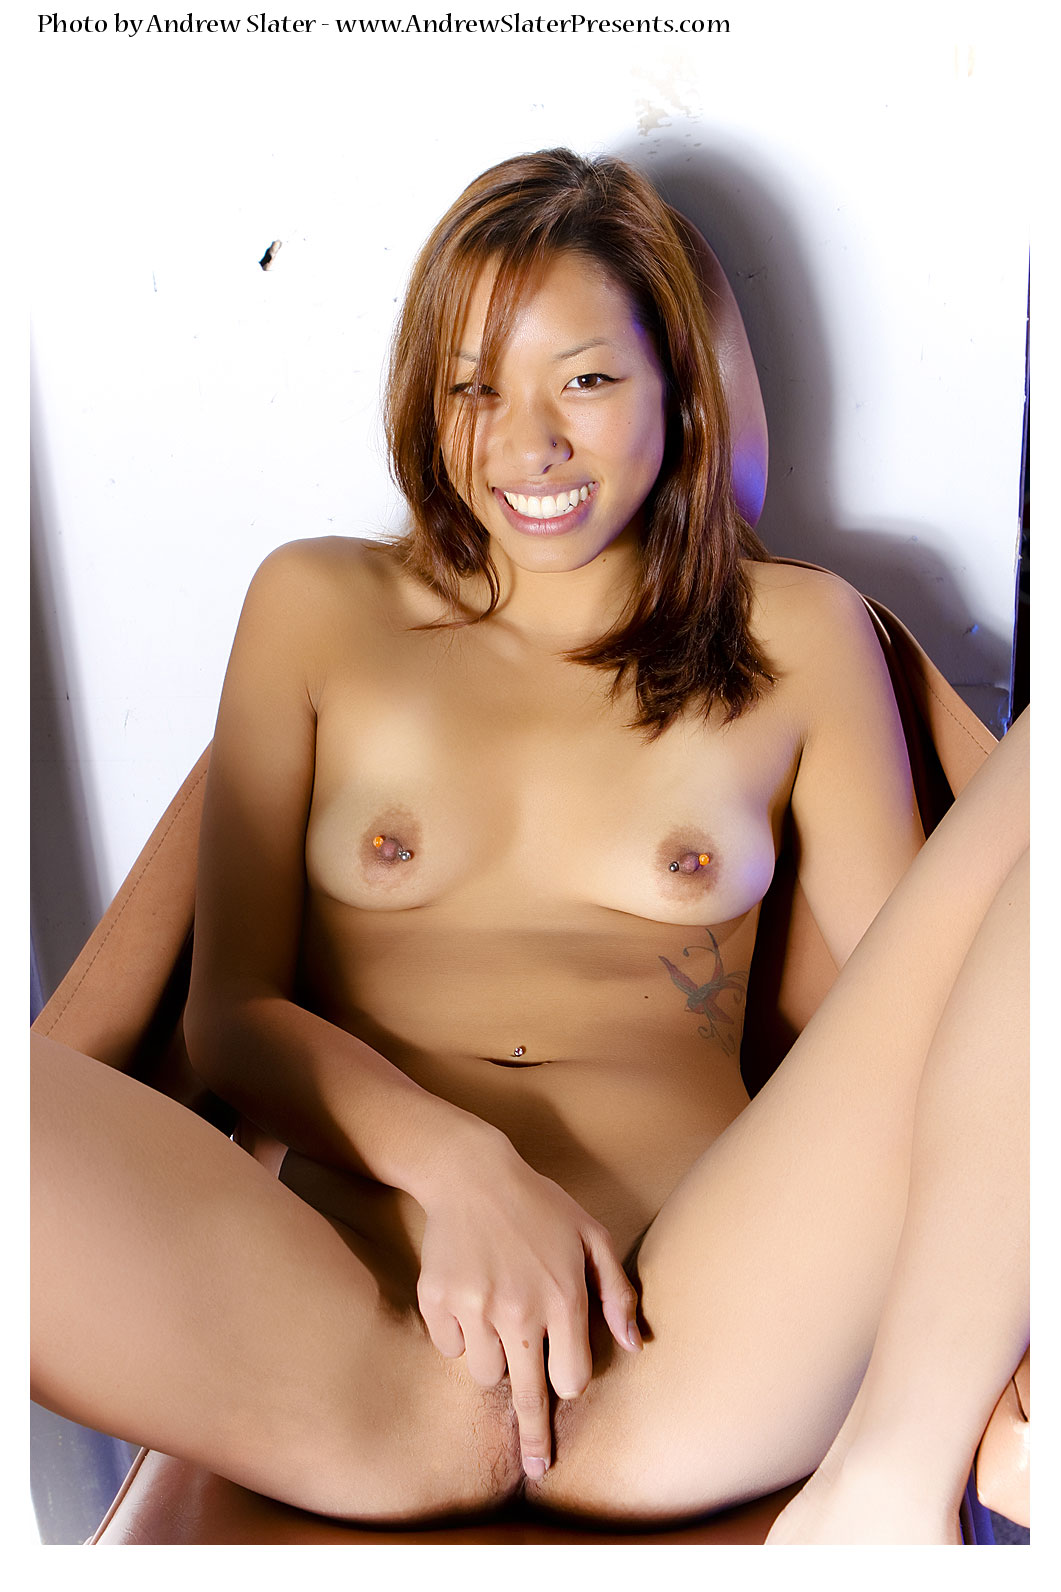 Sf bay models blowjob for